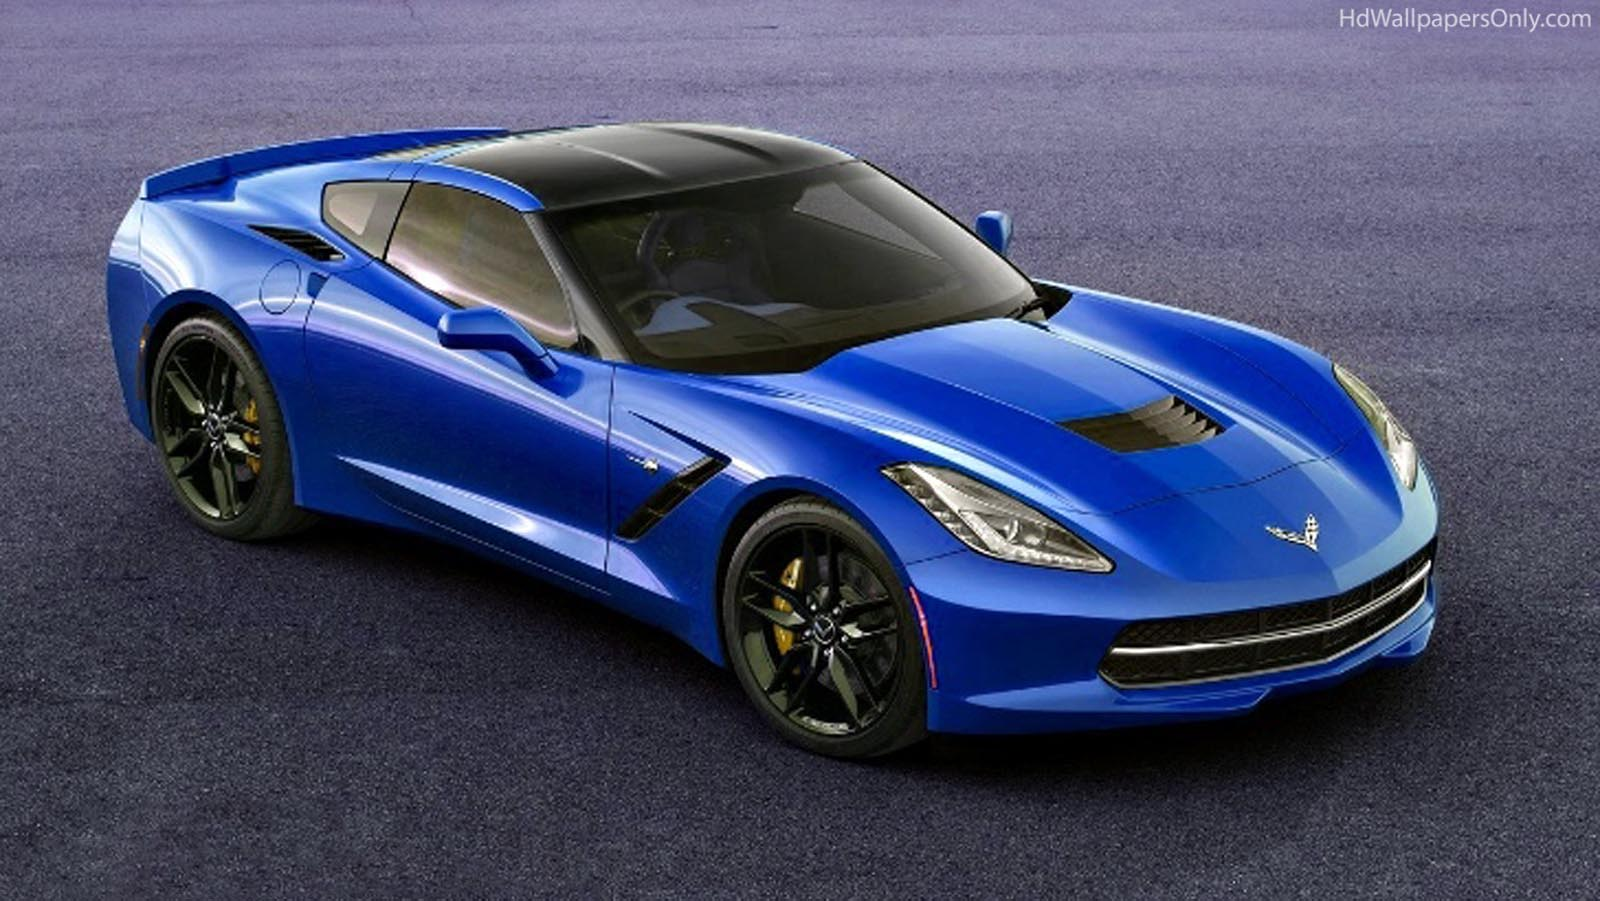 2014 Corvette C7 5537 Hd Wallpapers in Cars   Imagescicom 1600x901